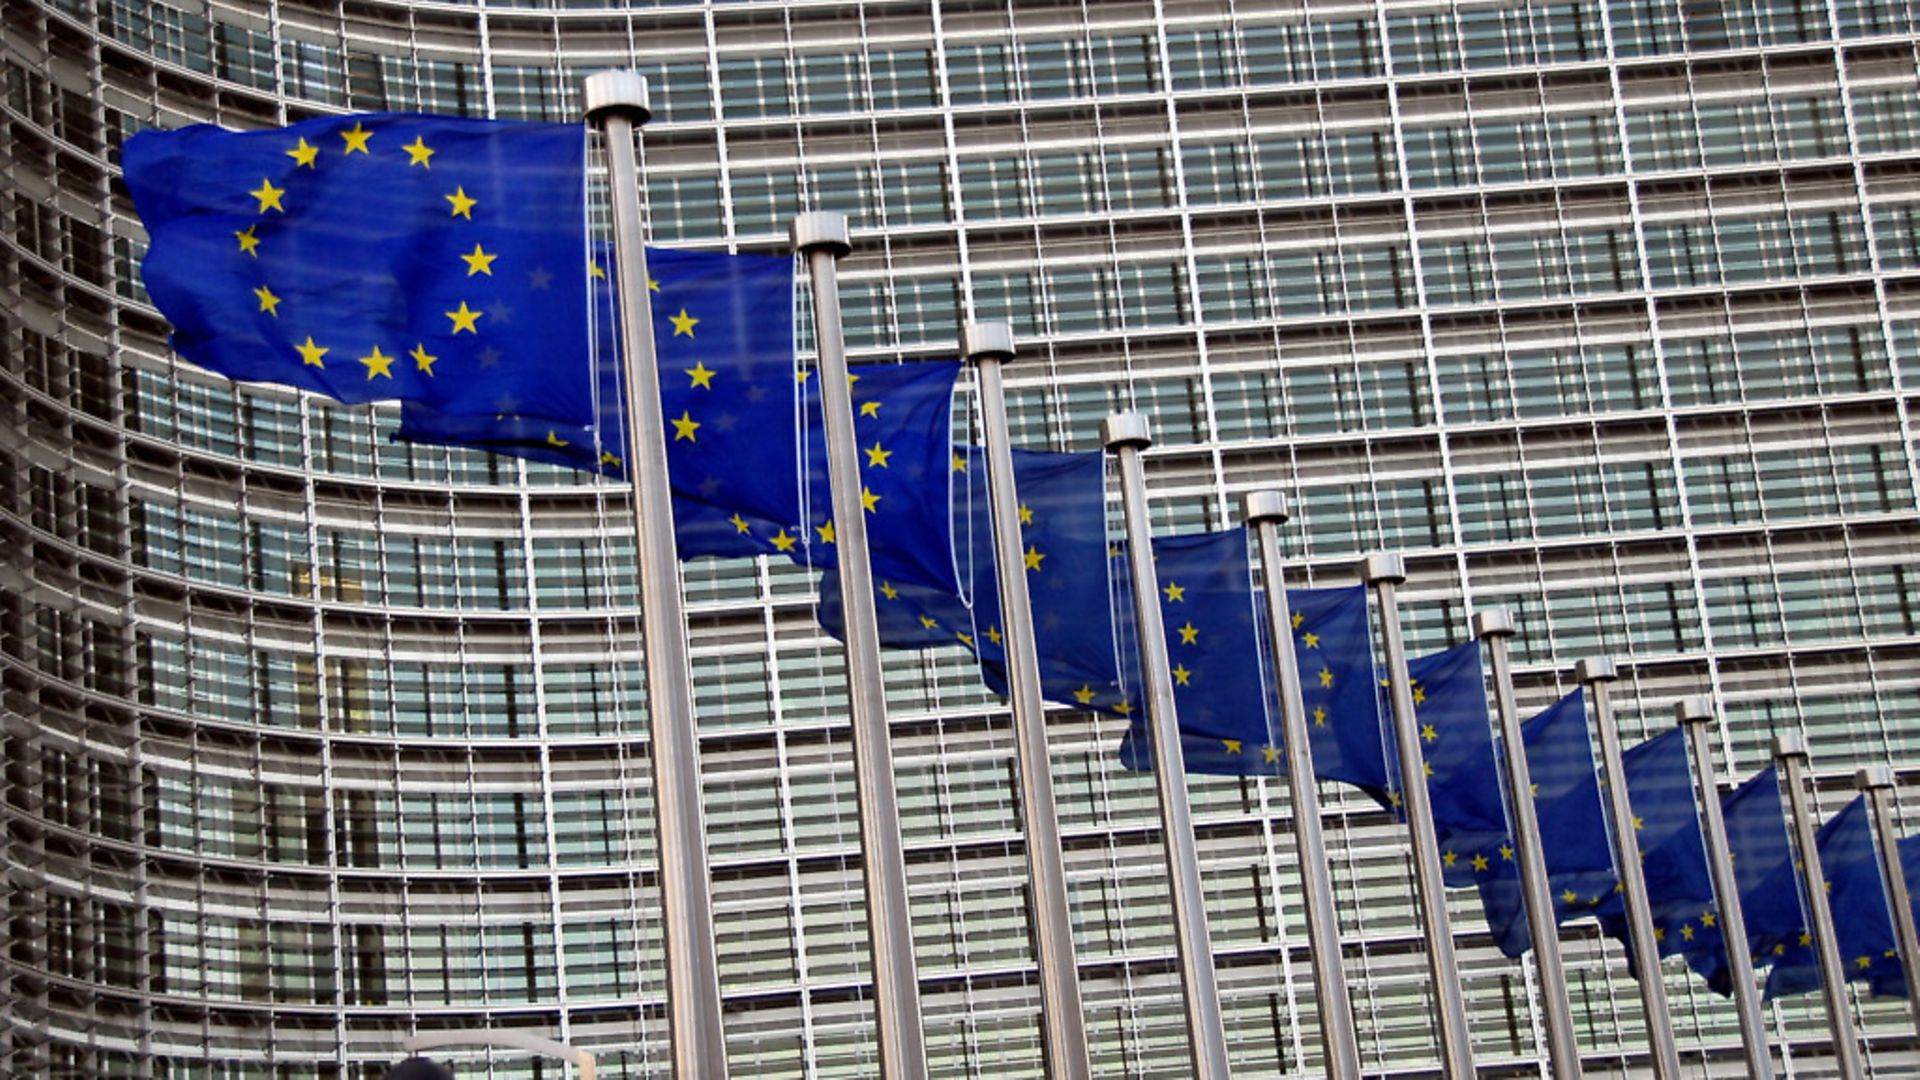 European Union flags in front of the Berlaymont Building in Brussels, Belgium. Picture: Getty Images - Credit: Getty Images